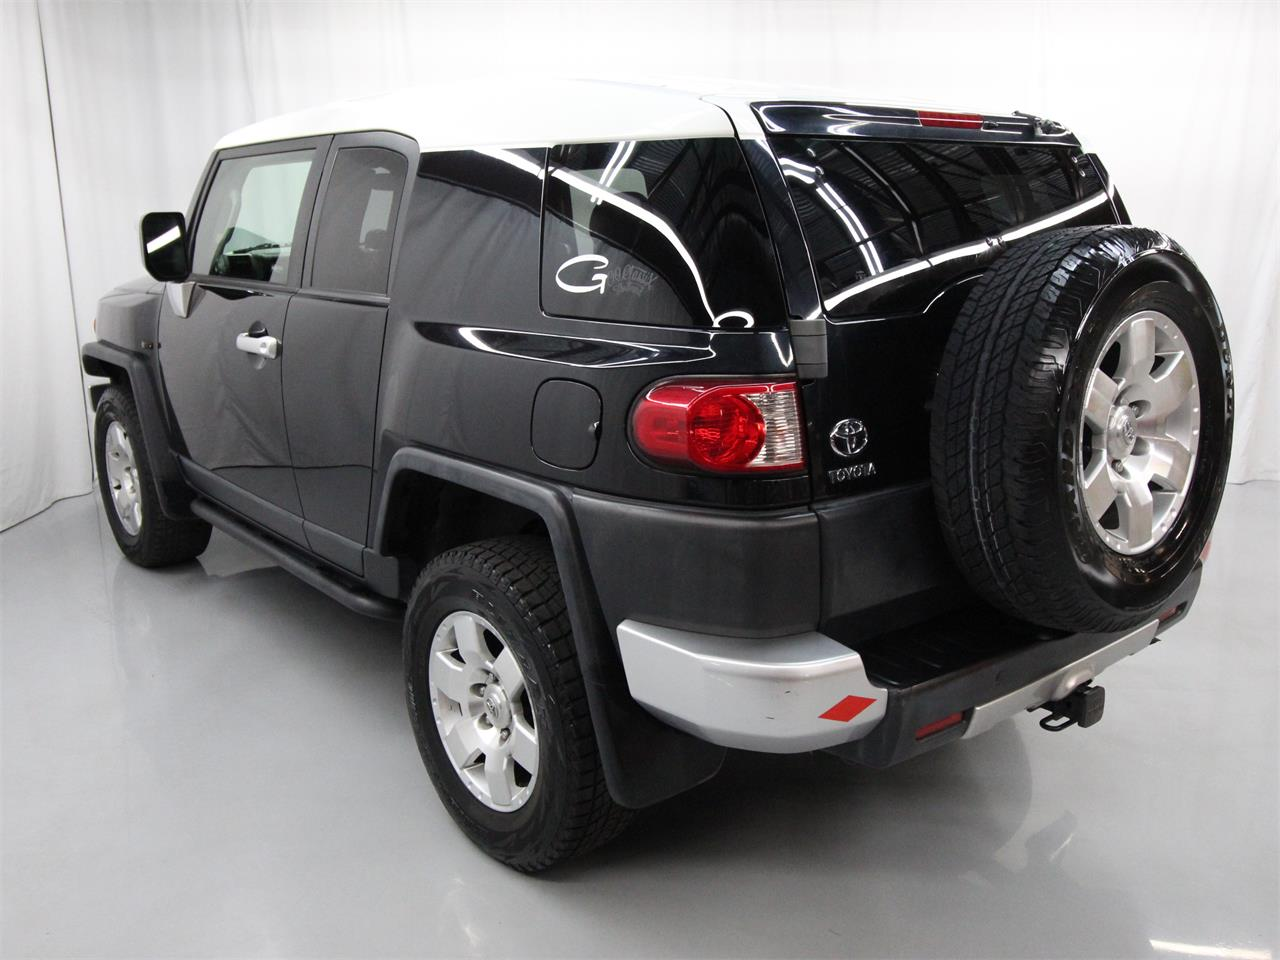 2007 Toyota FJ Cruiser (CC-1337532) for sale in Christiansburg, Virginia